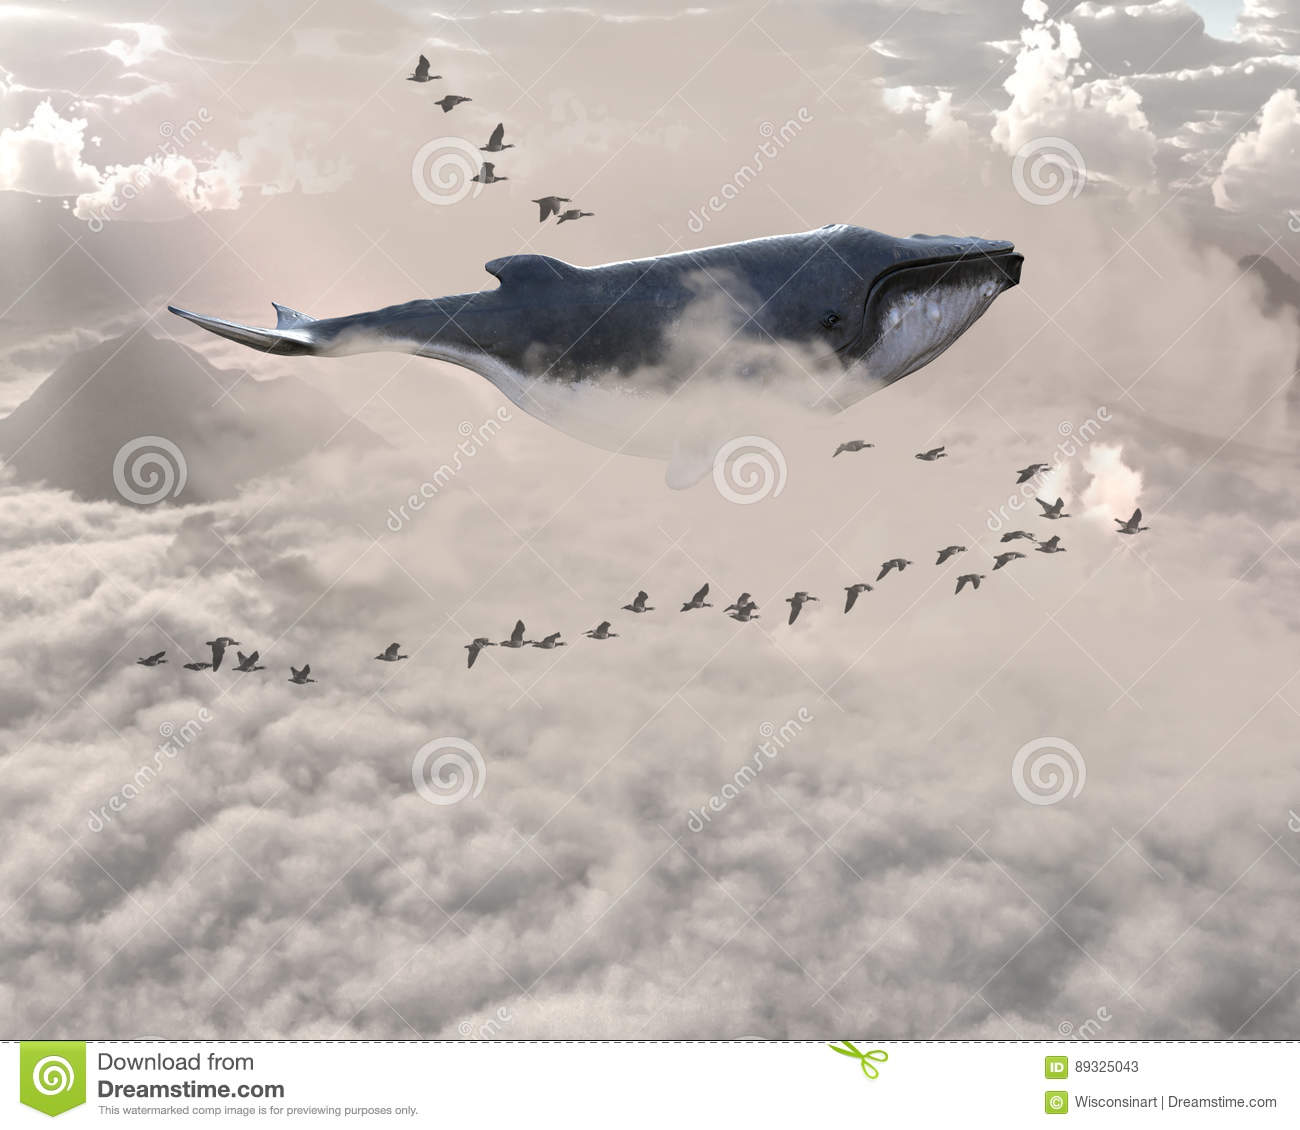 Surreal Flying Whale, Birds, Sky